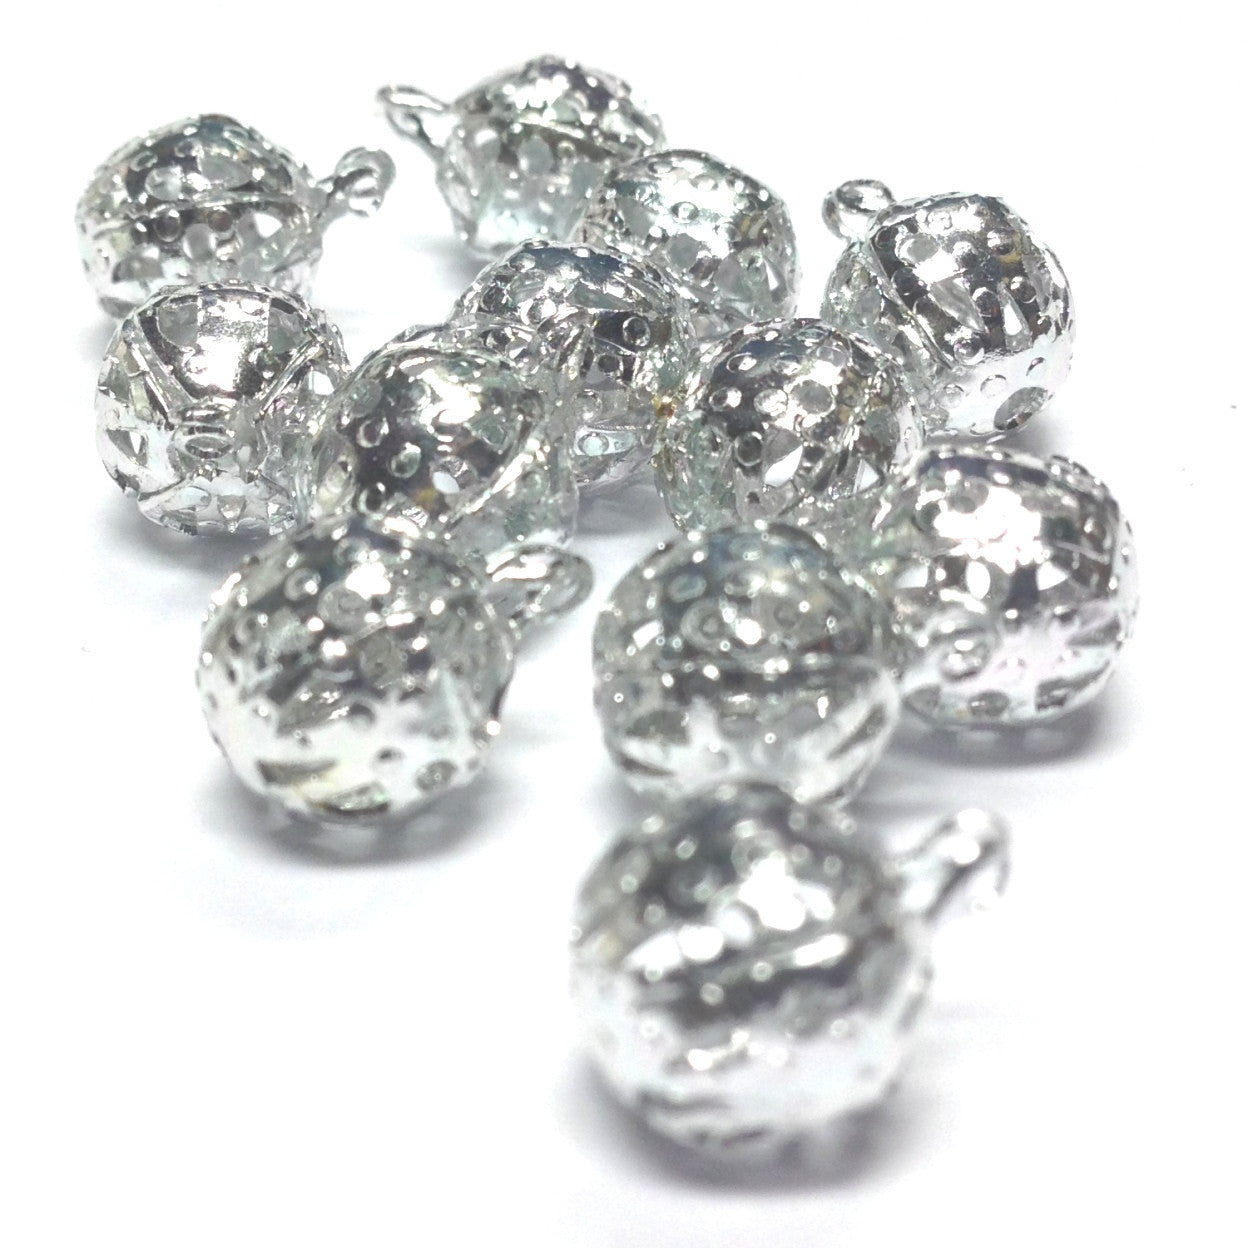 8MM Silvertone Filigree Drop (72 pieces)